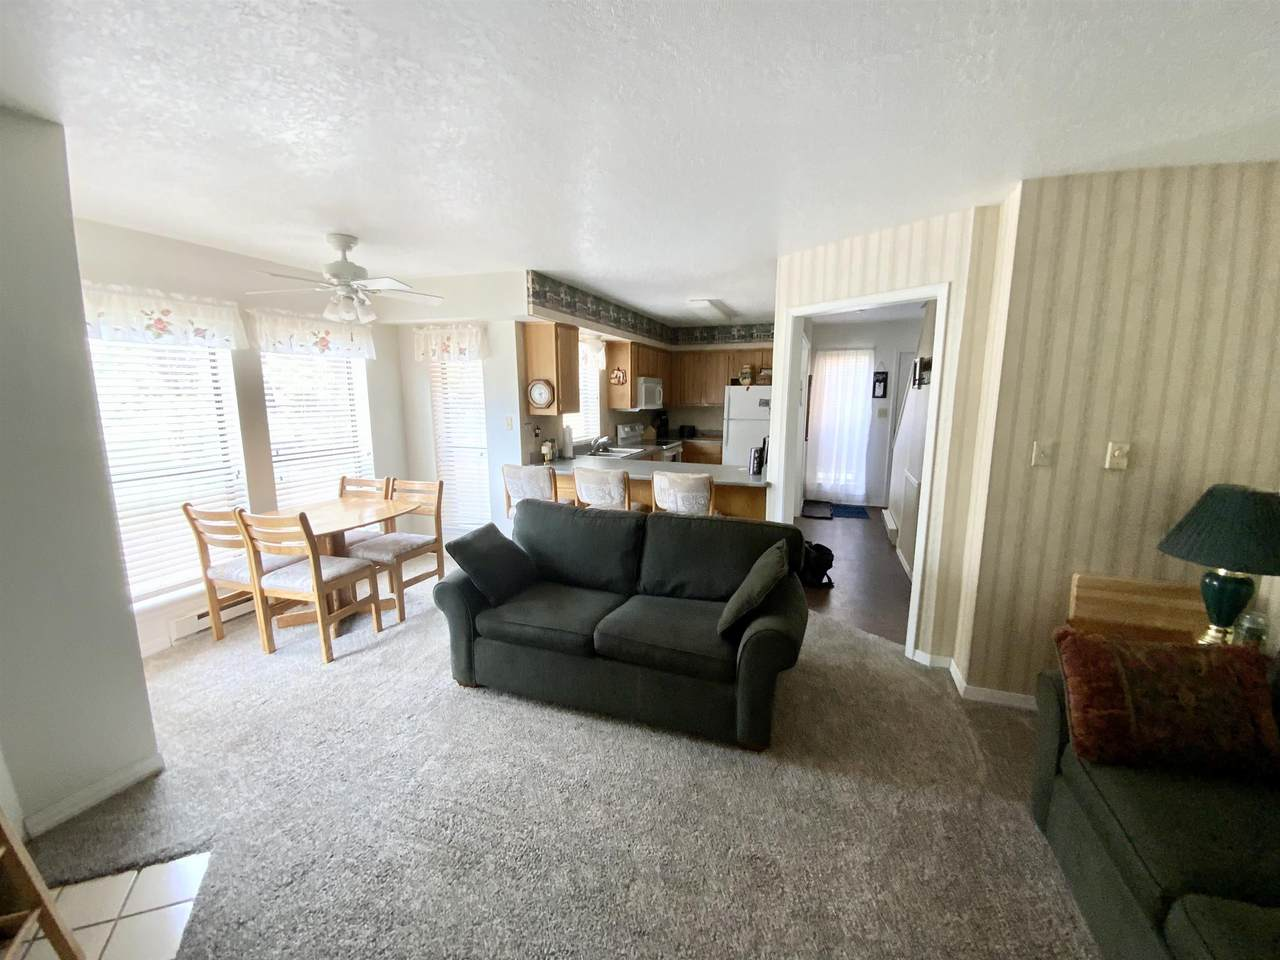 37 Vail Ave - Photo 1